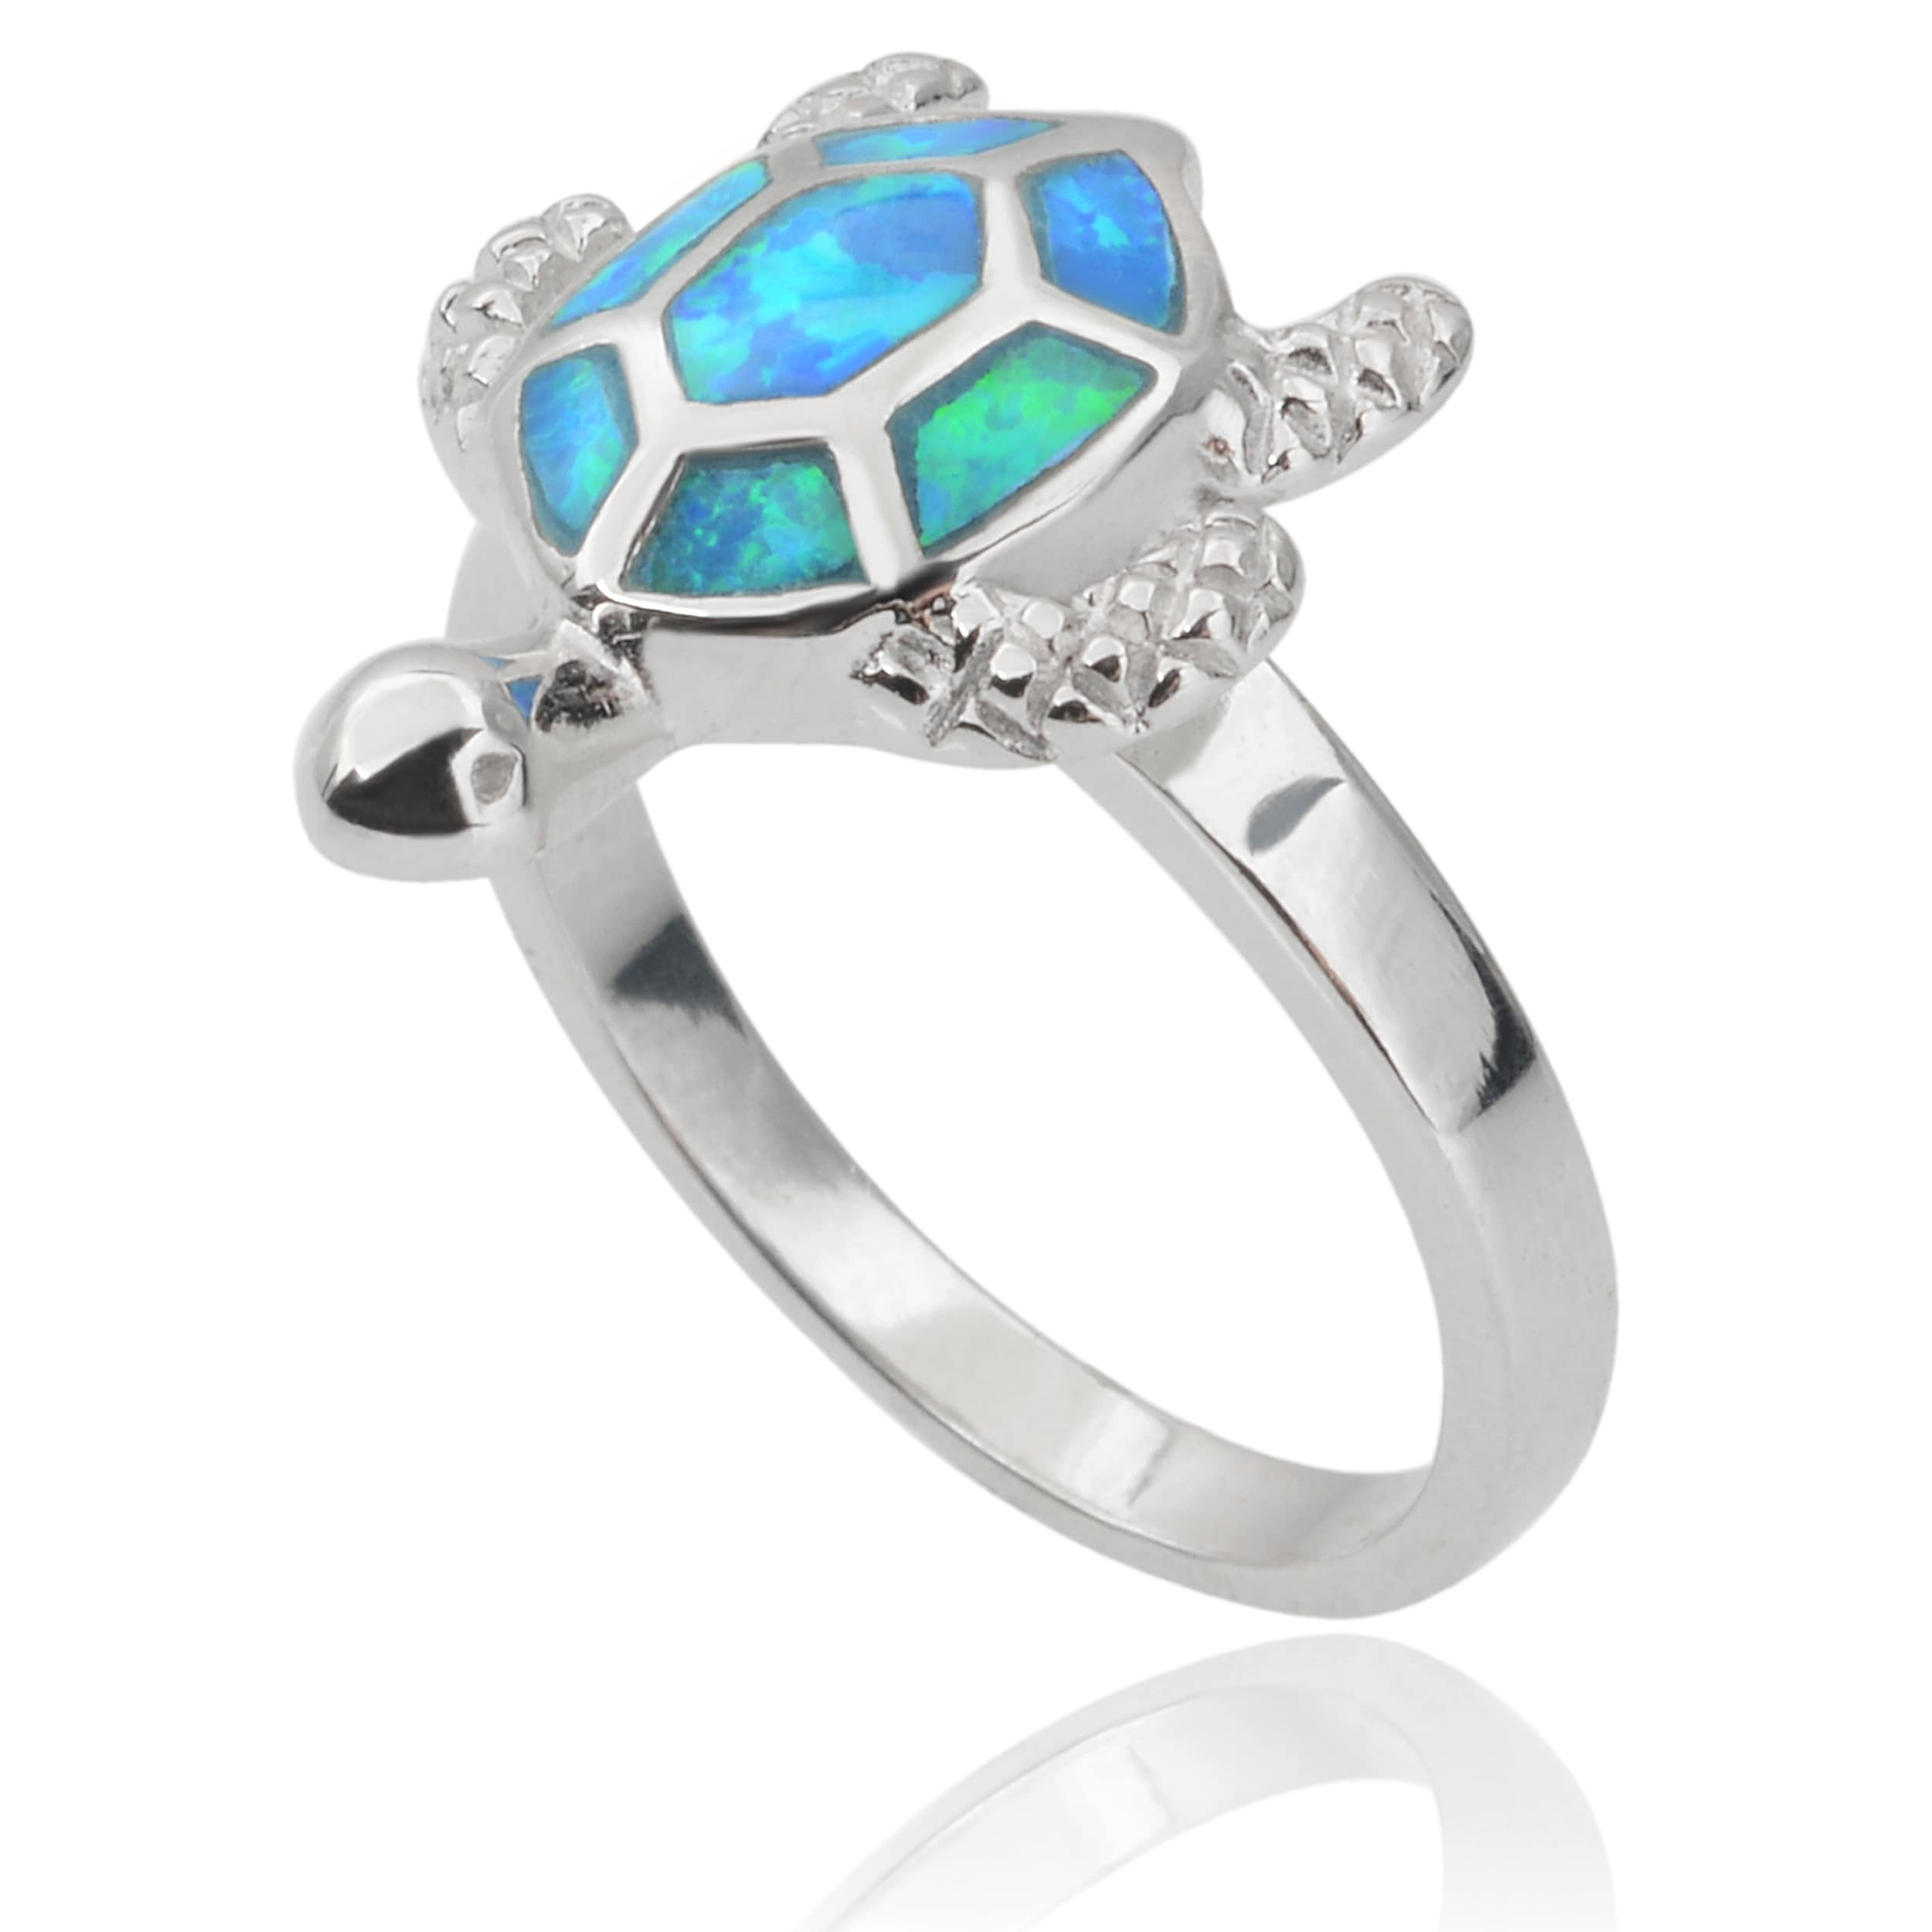 layer the sea this detail products looks with silver rings aeravida brilliant plain adorable brought to ring of turtle center pr expertly and crafted stamped details tilted after sterling at deeply life